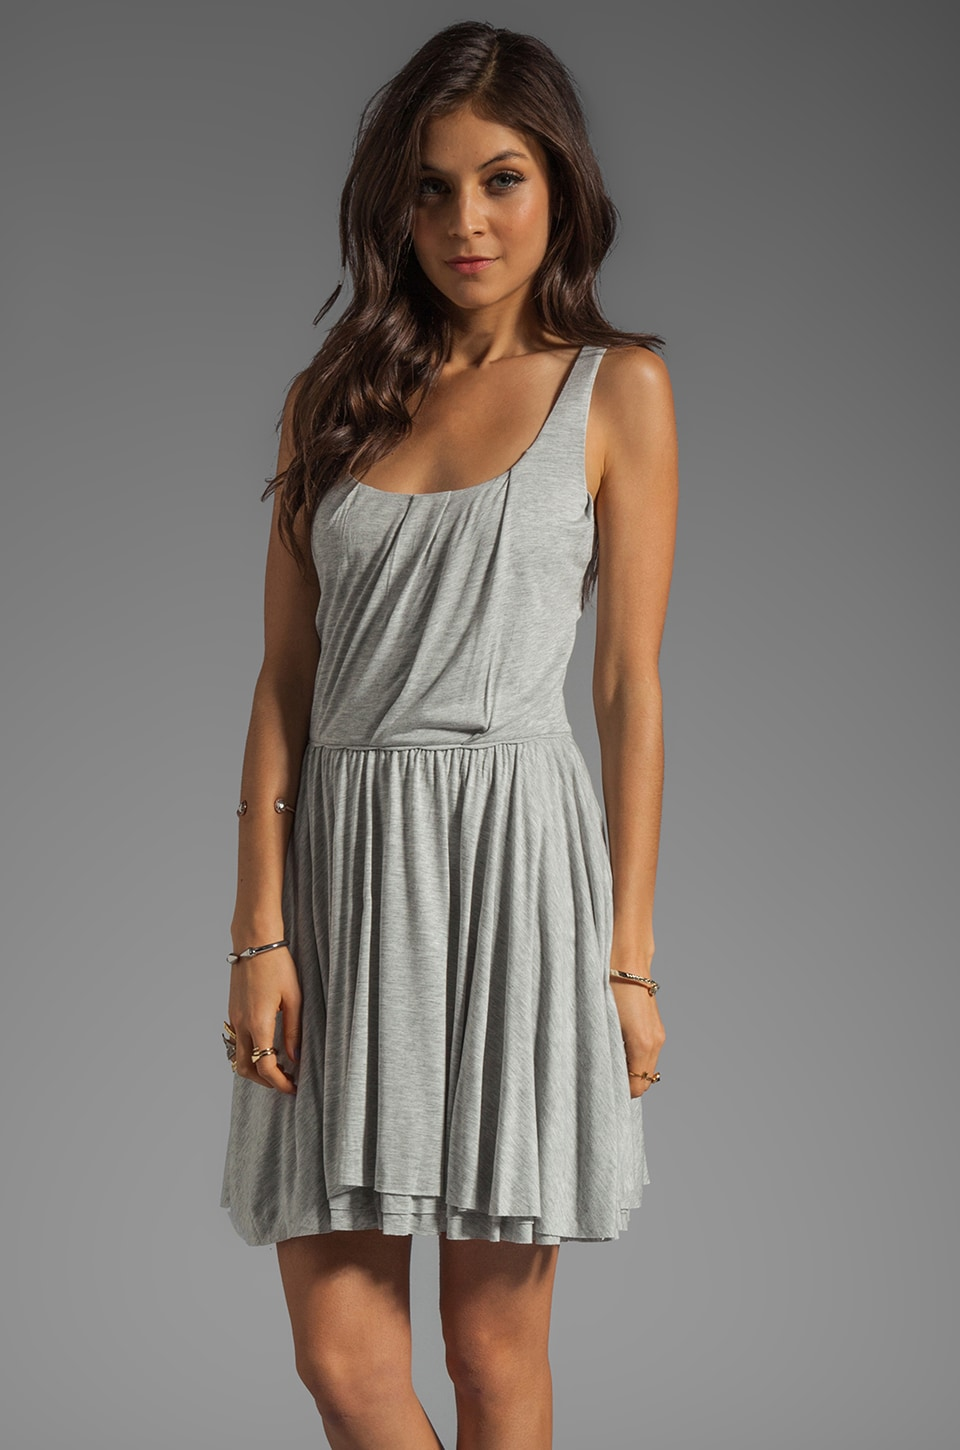 Marc by Marc Jacobs Beals Mini Dress in Mouse Grey Melange